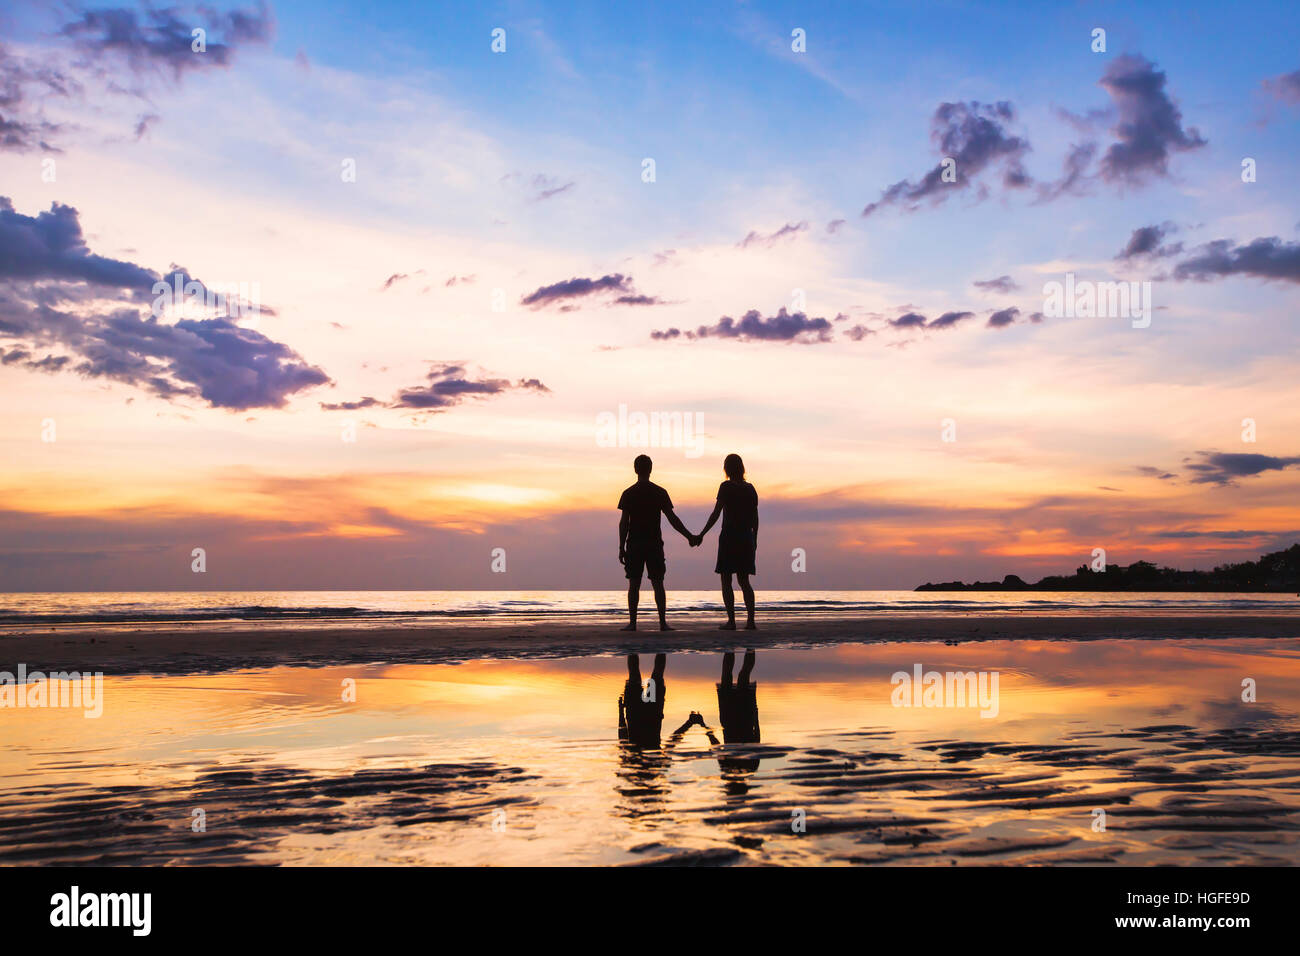 happy family on the beach, silhouette of couple at sunset, man and woman relationships, love - Stock Image